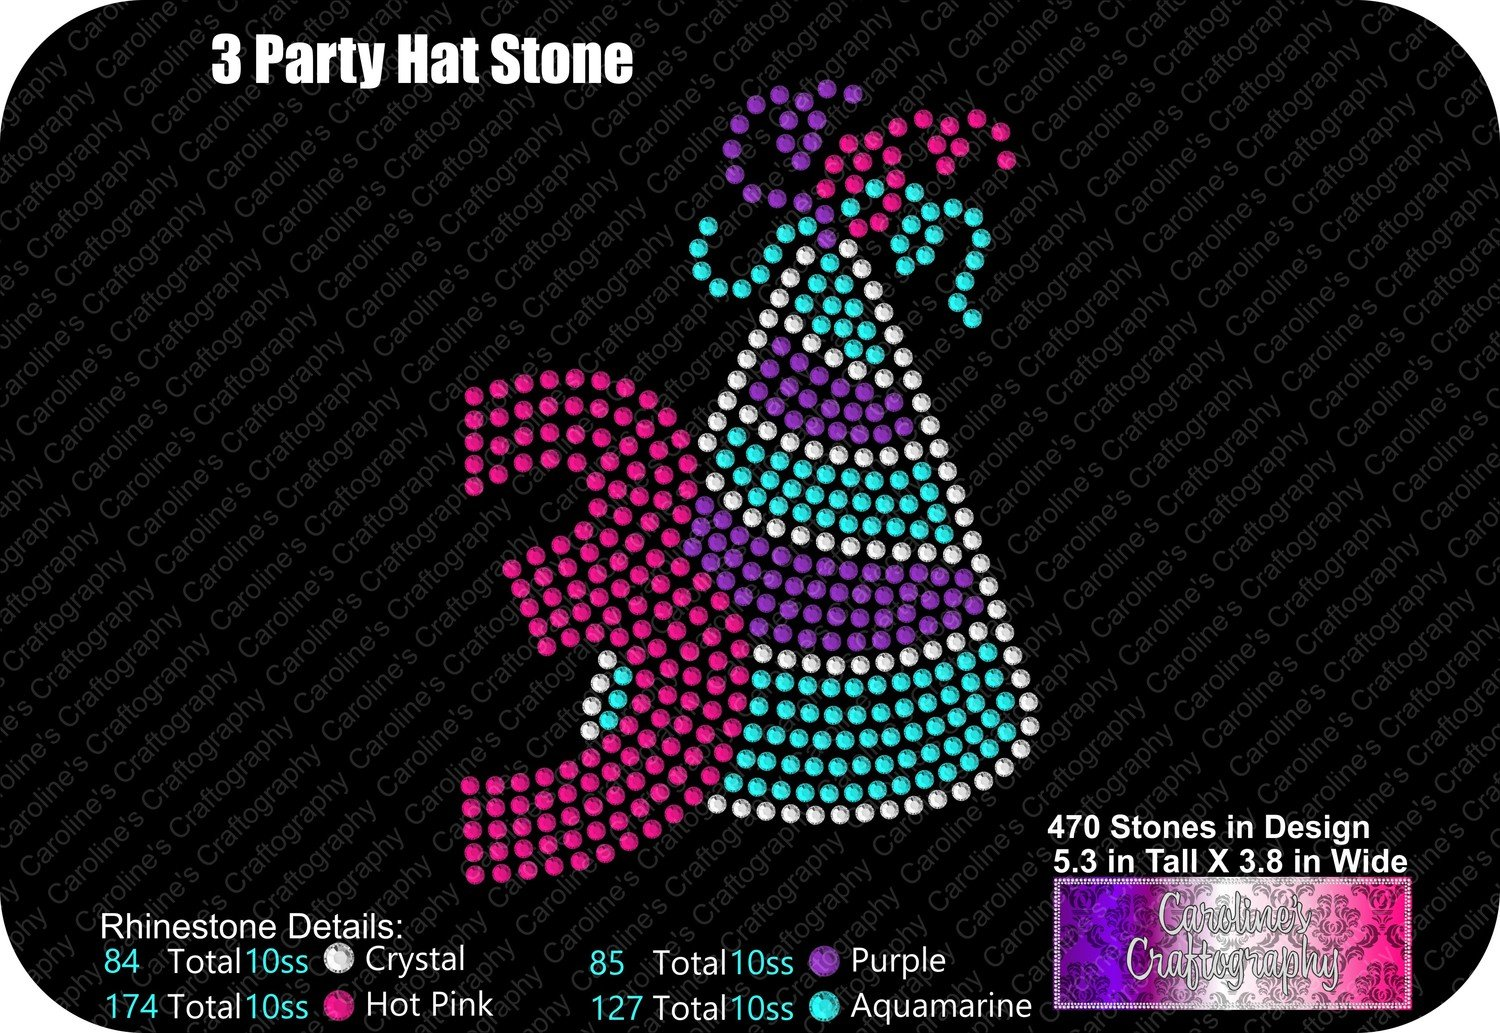 Party Hat Number 3 Stone